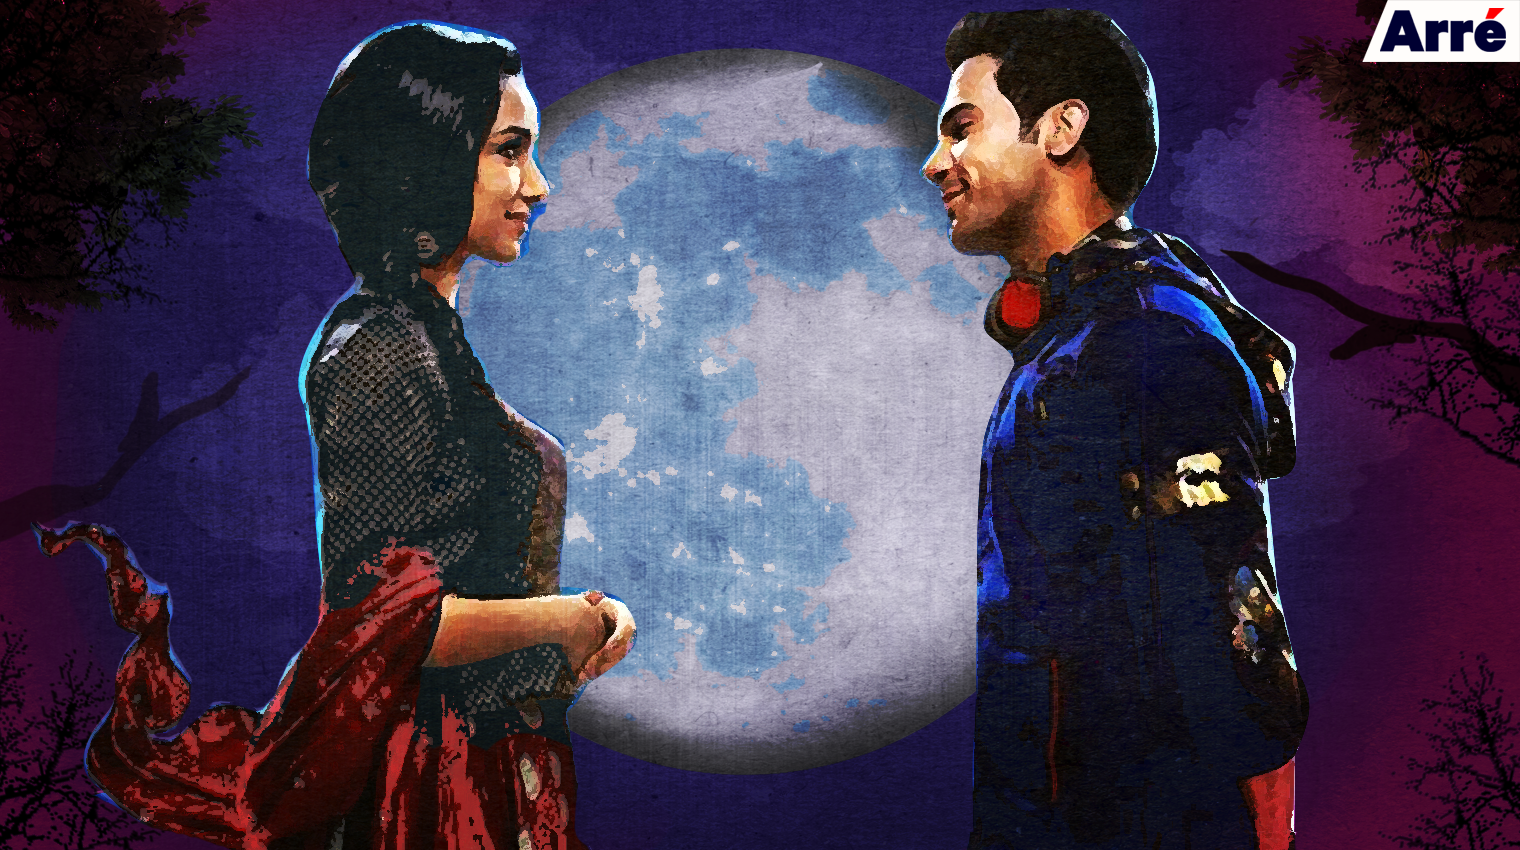 Stree Review A New World Where Men Live In Fear Of Women